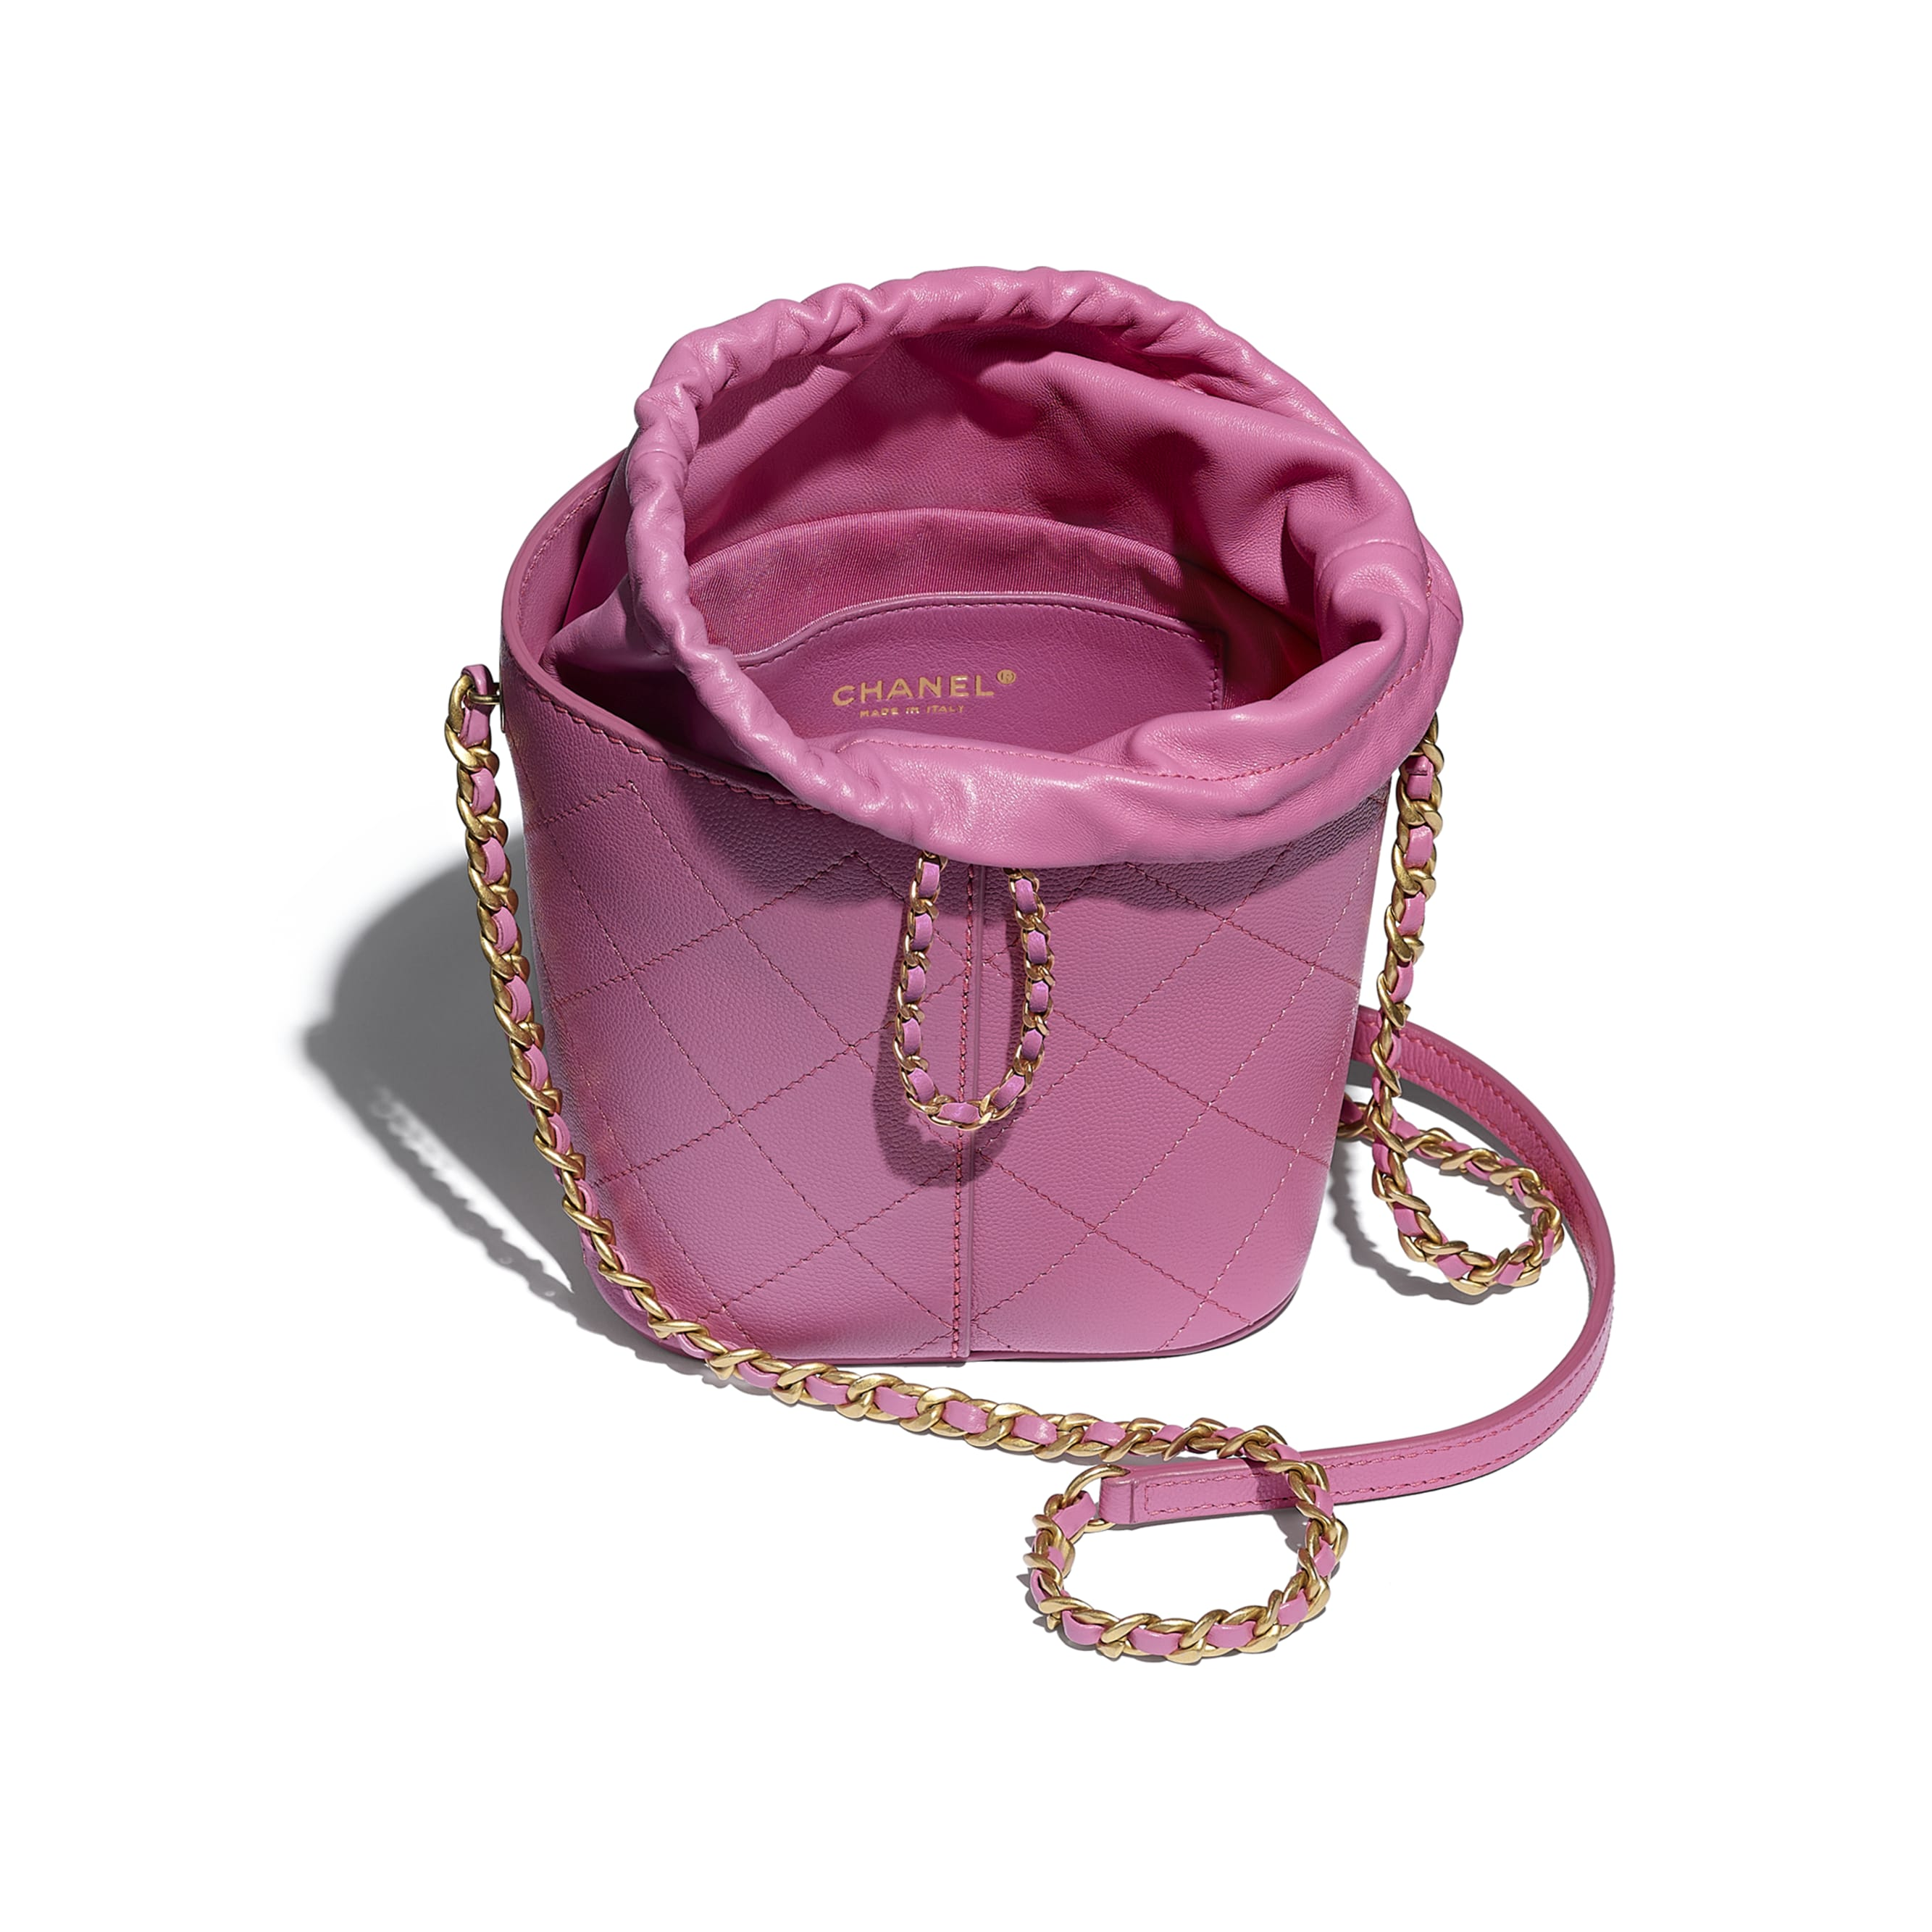 Drawstring Bag - Pink - Grained Lambskin, Smooth Lambskin & Gold-Tone Metal - CHANEL - Other view - see standard sized version